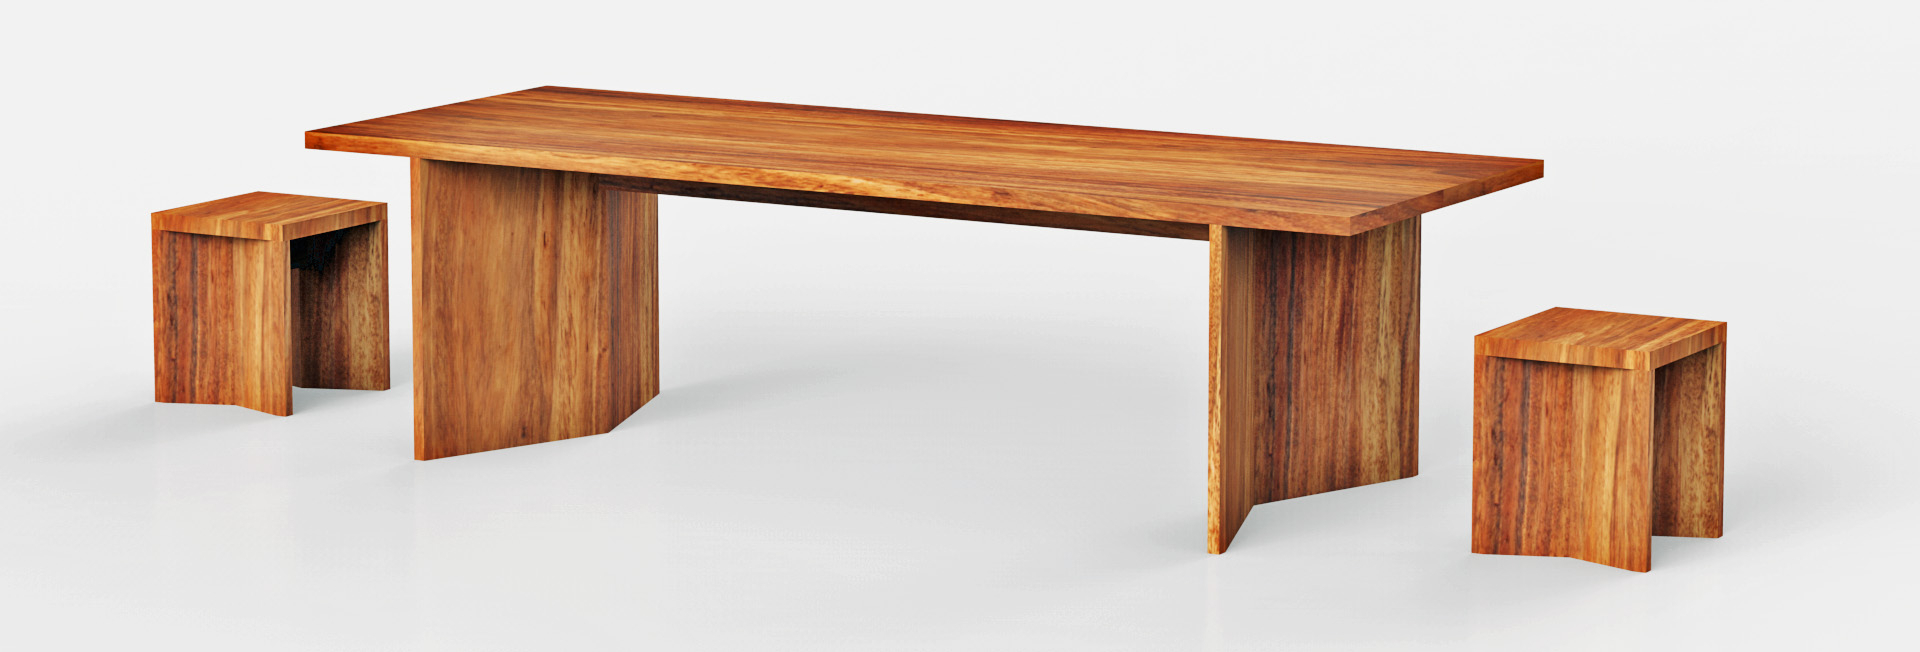 Popular How To Calculate The Best Dining Table Size For Your Room Within 6 Seater Retangular Wood Contemporary Dining Tables (View 22 of 25)